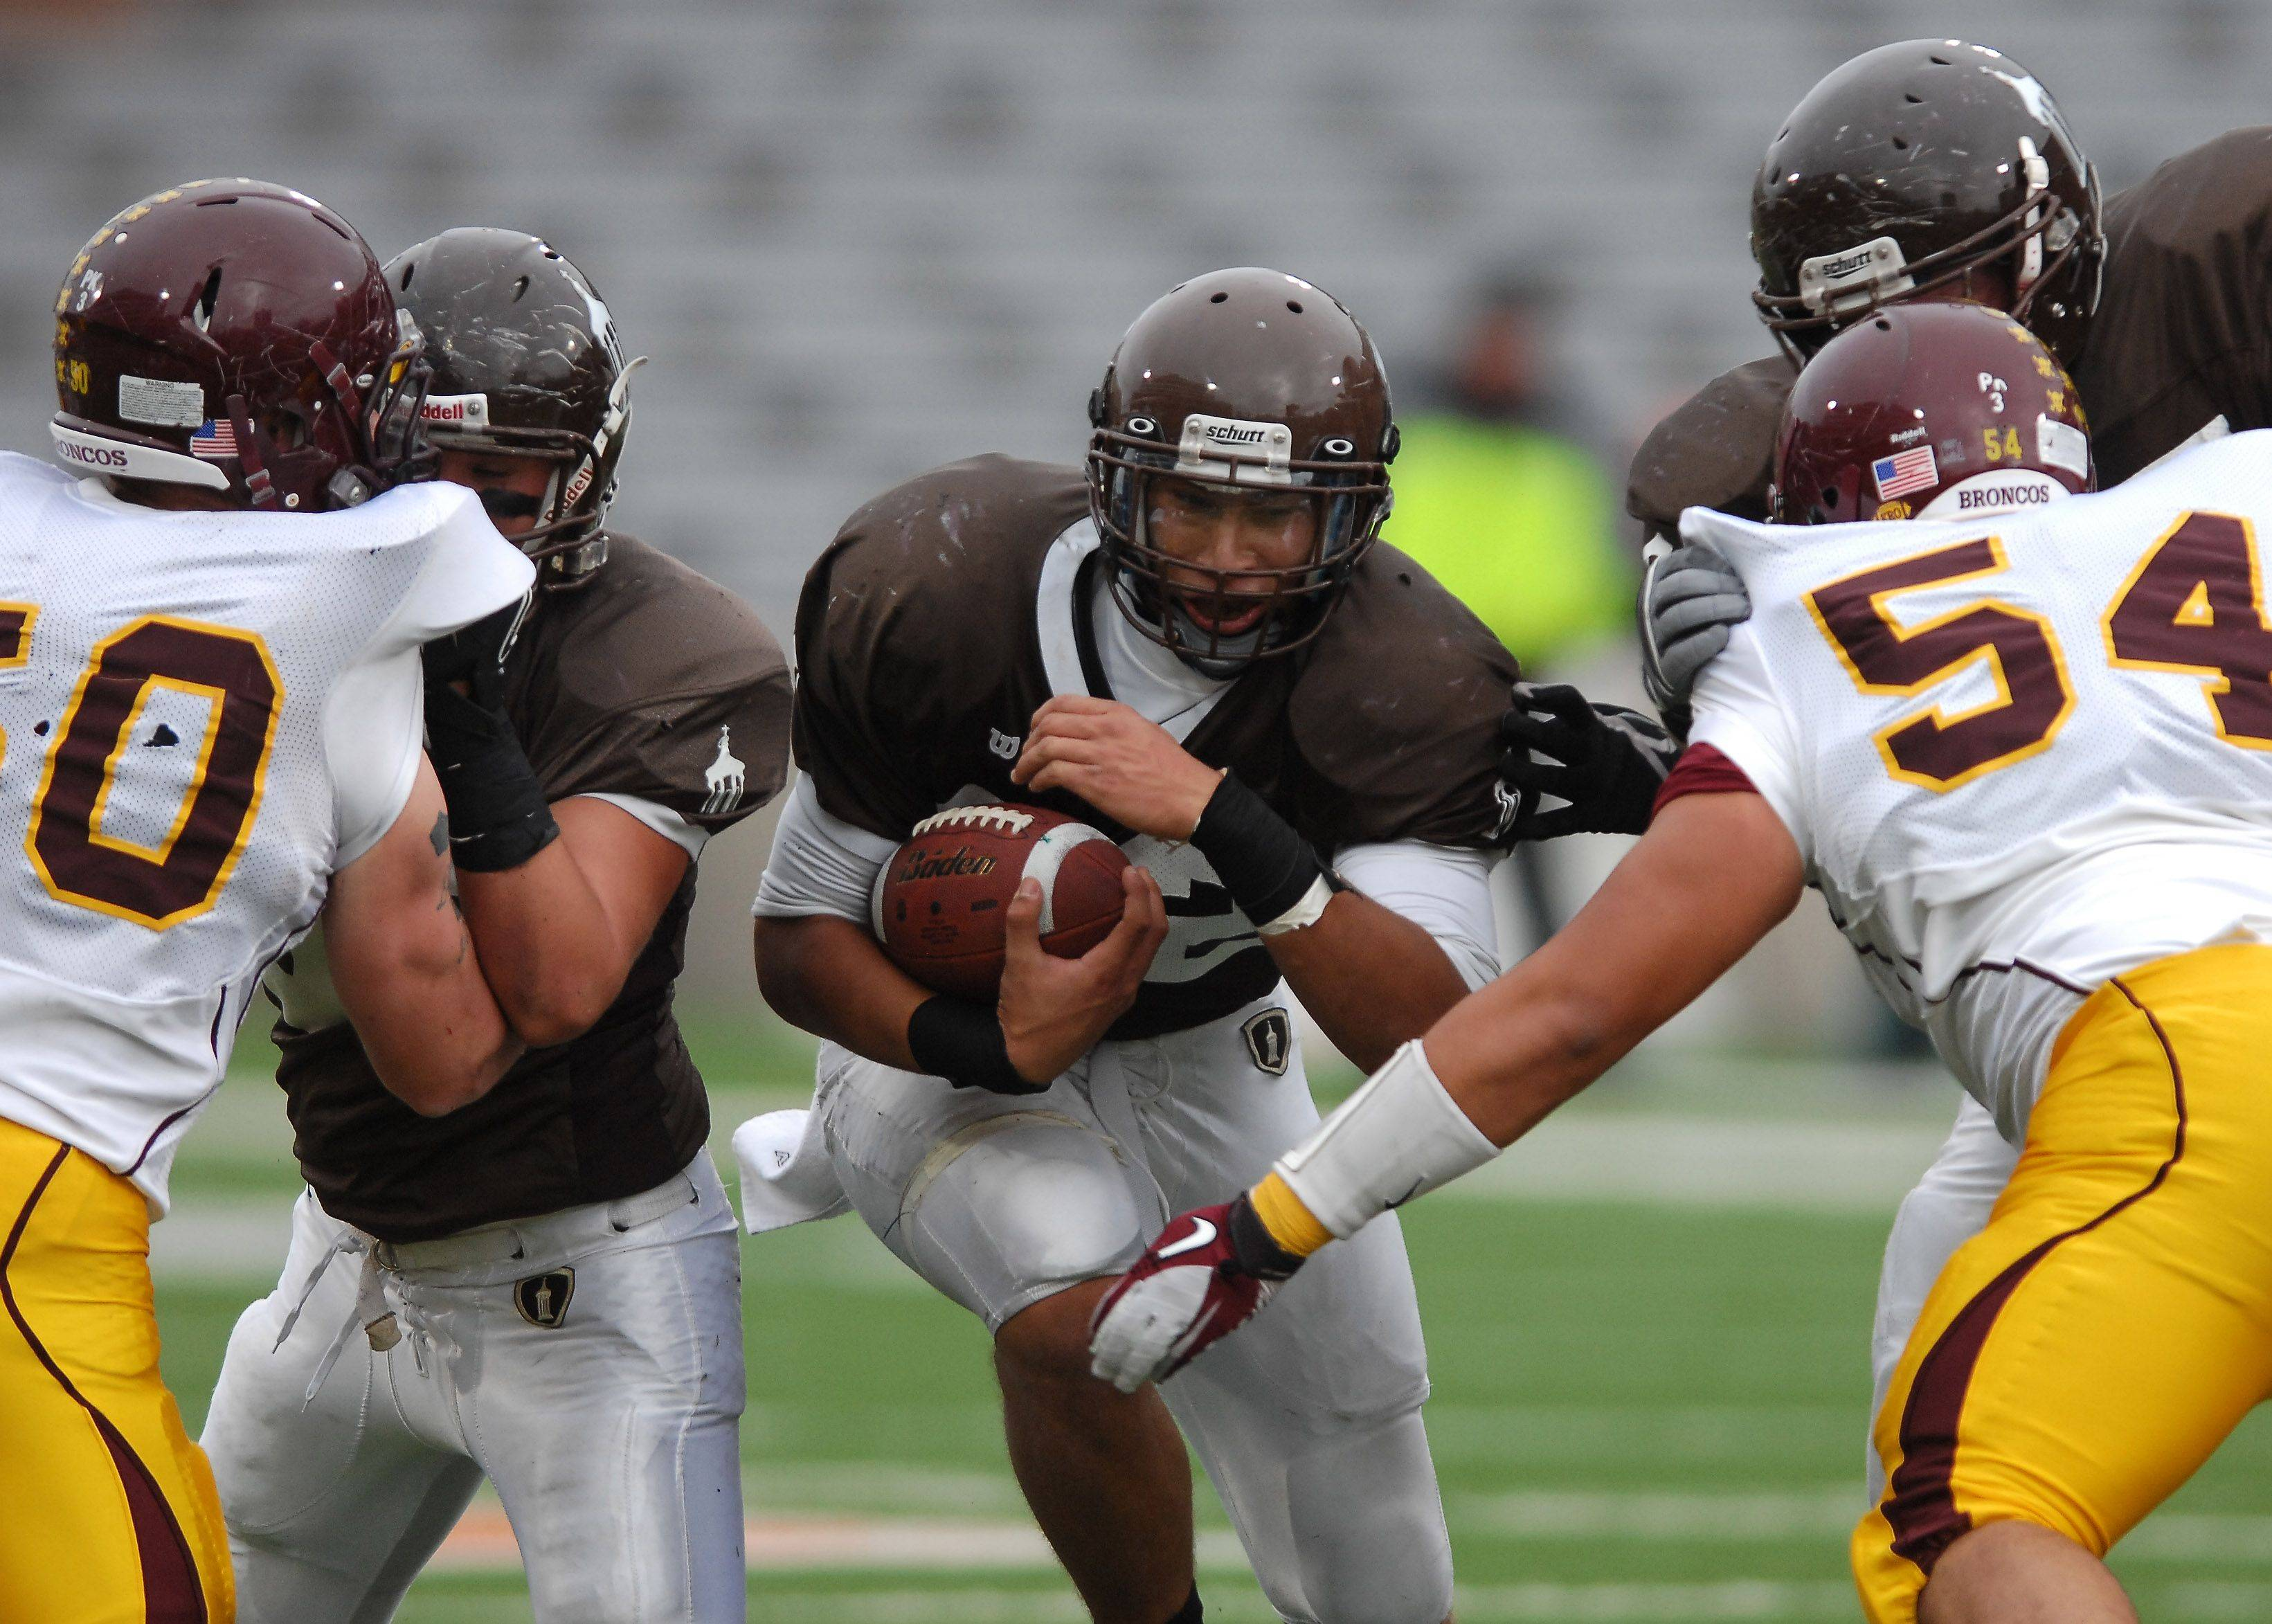 Joliet Catholic's Ty Isaac ran for 515 yards and 6 touchdowns during the Class 5A state championship game against Montini in Champaign on Saturday.